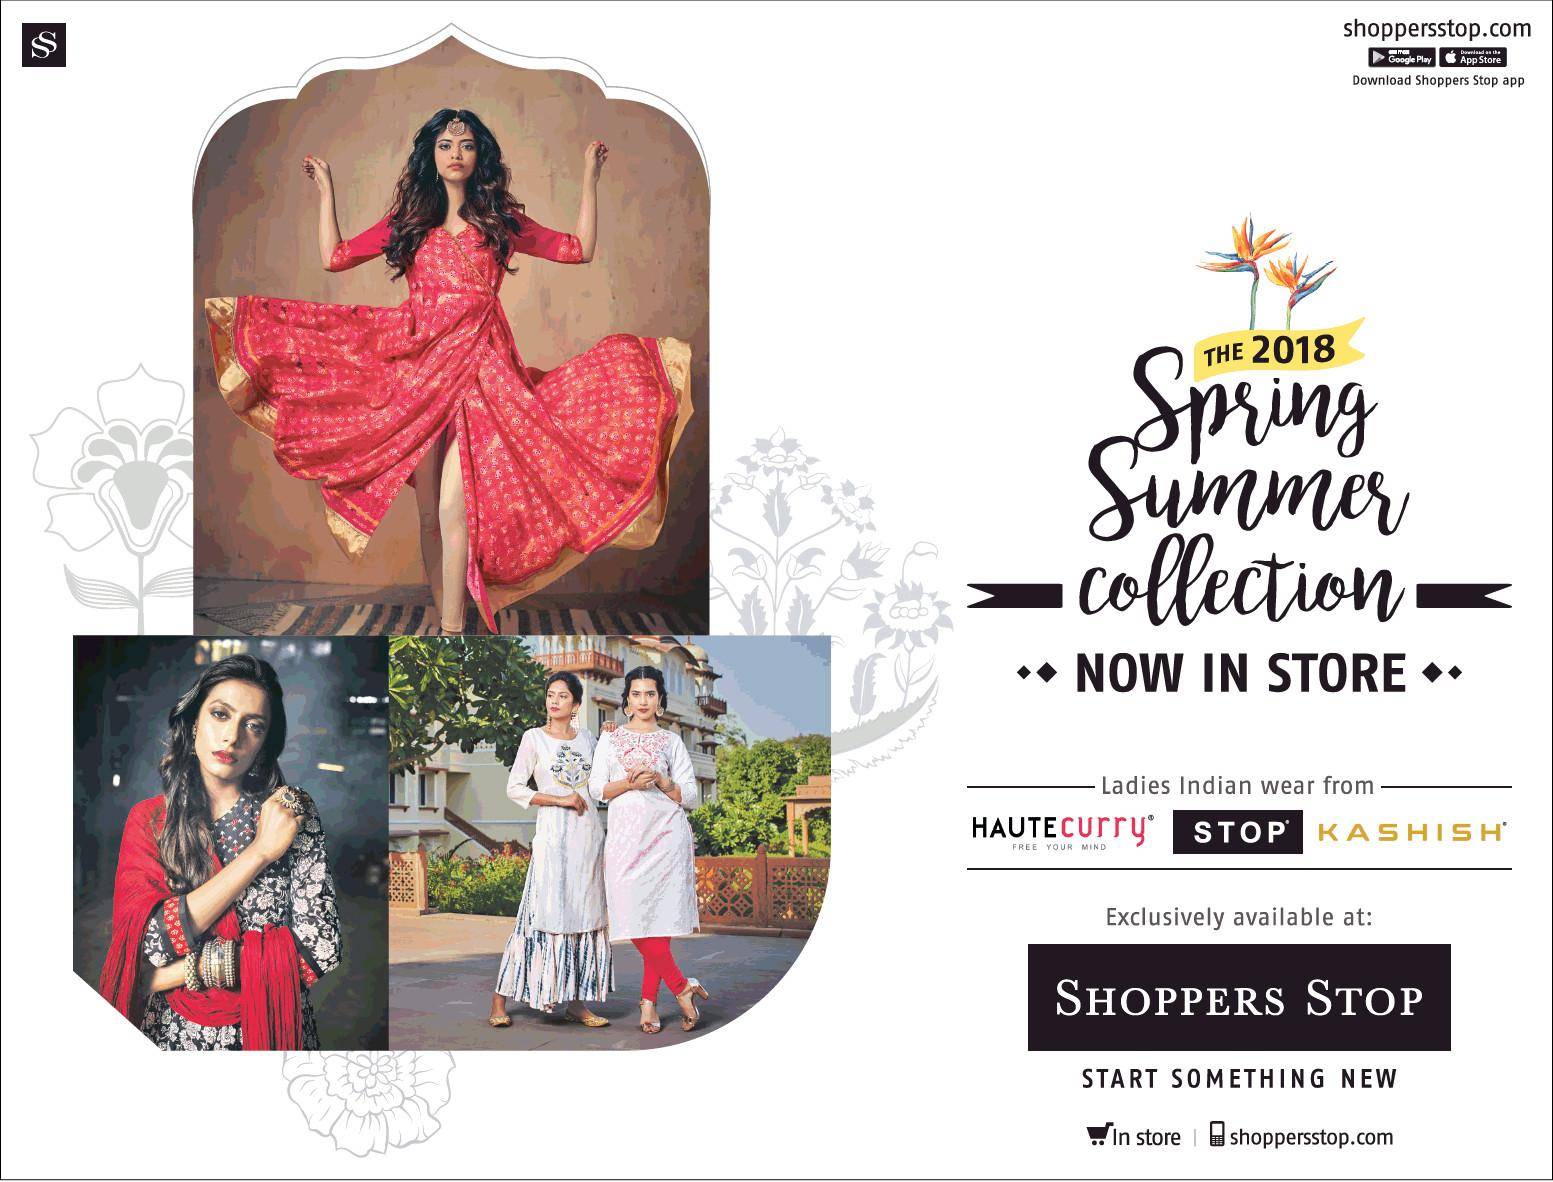 Shoppers Stop 2018 Spring Summer Collection Now